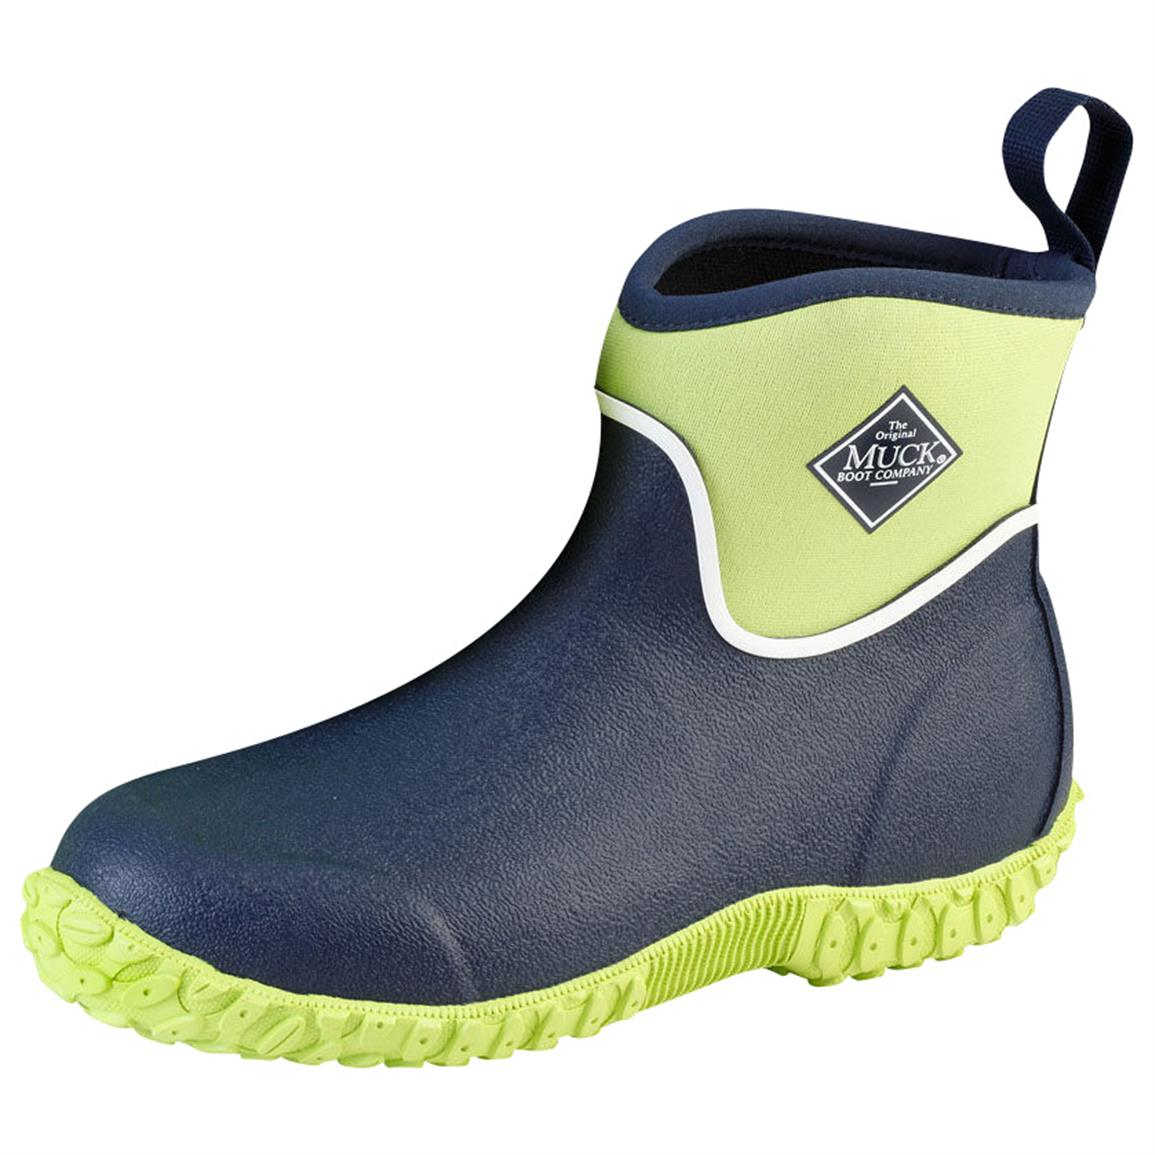 Muck Boot Kids' Muckster II Ankle Waterproof Boots, Navy / Lime Green